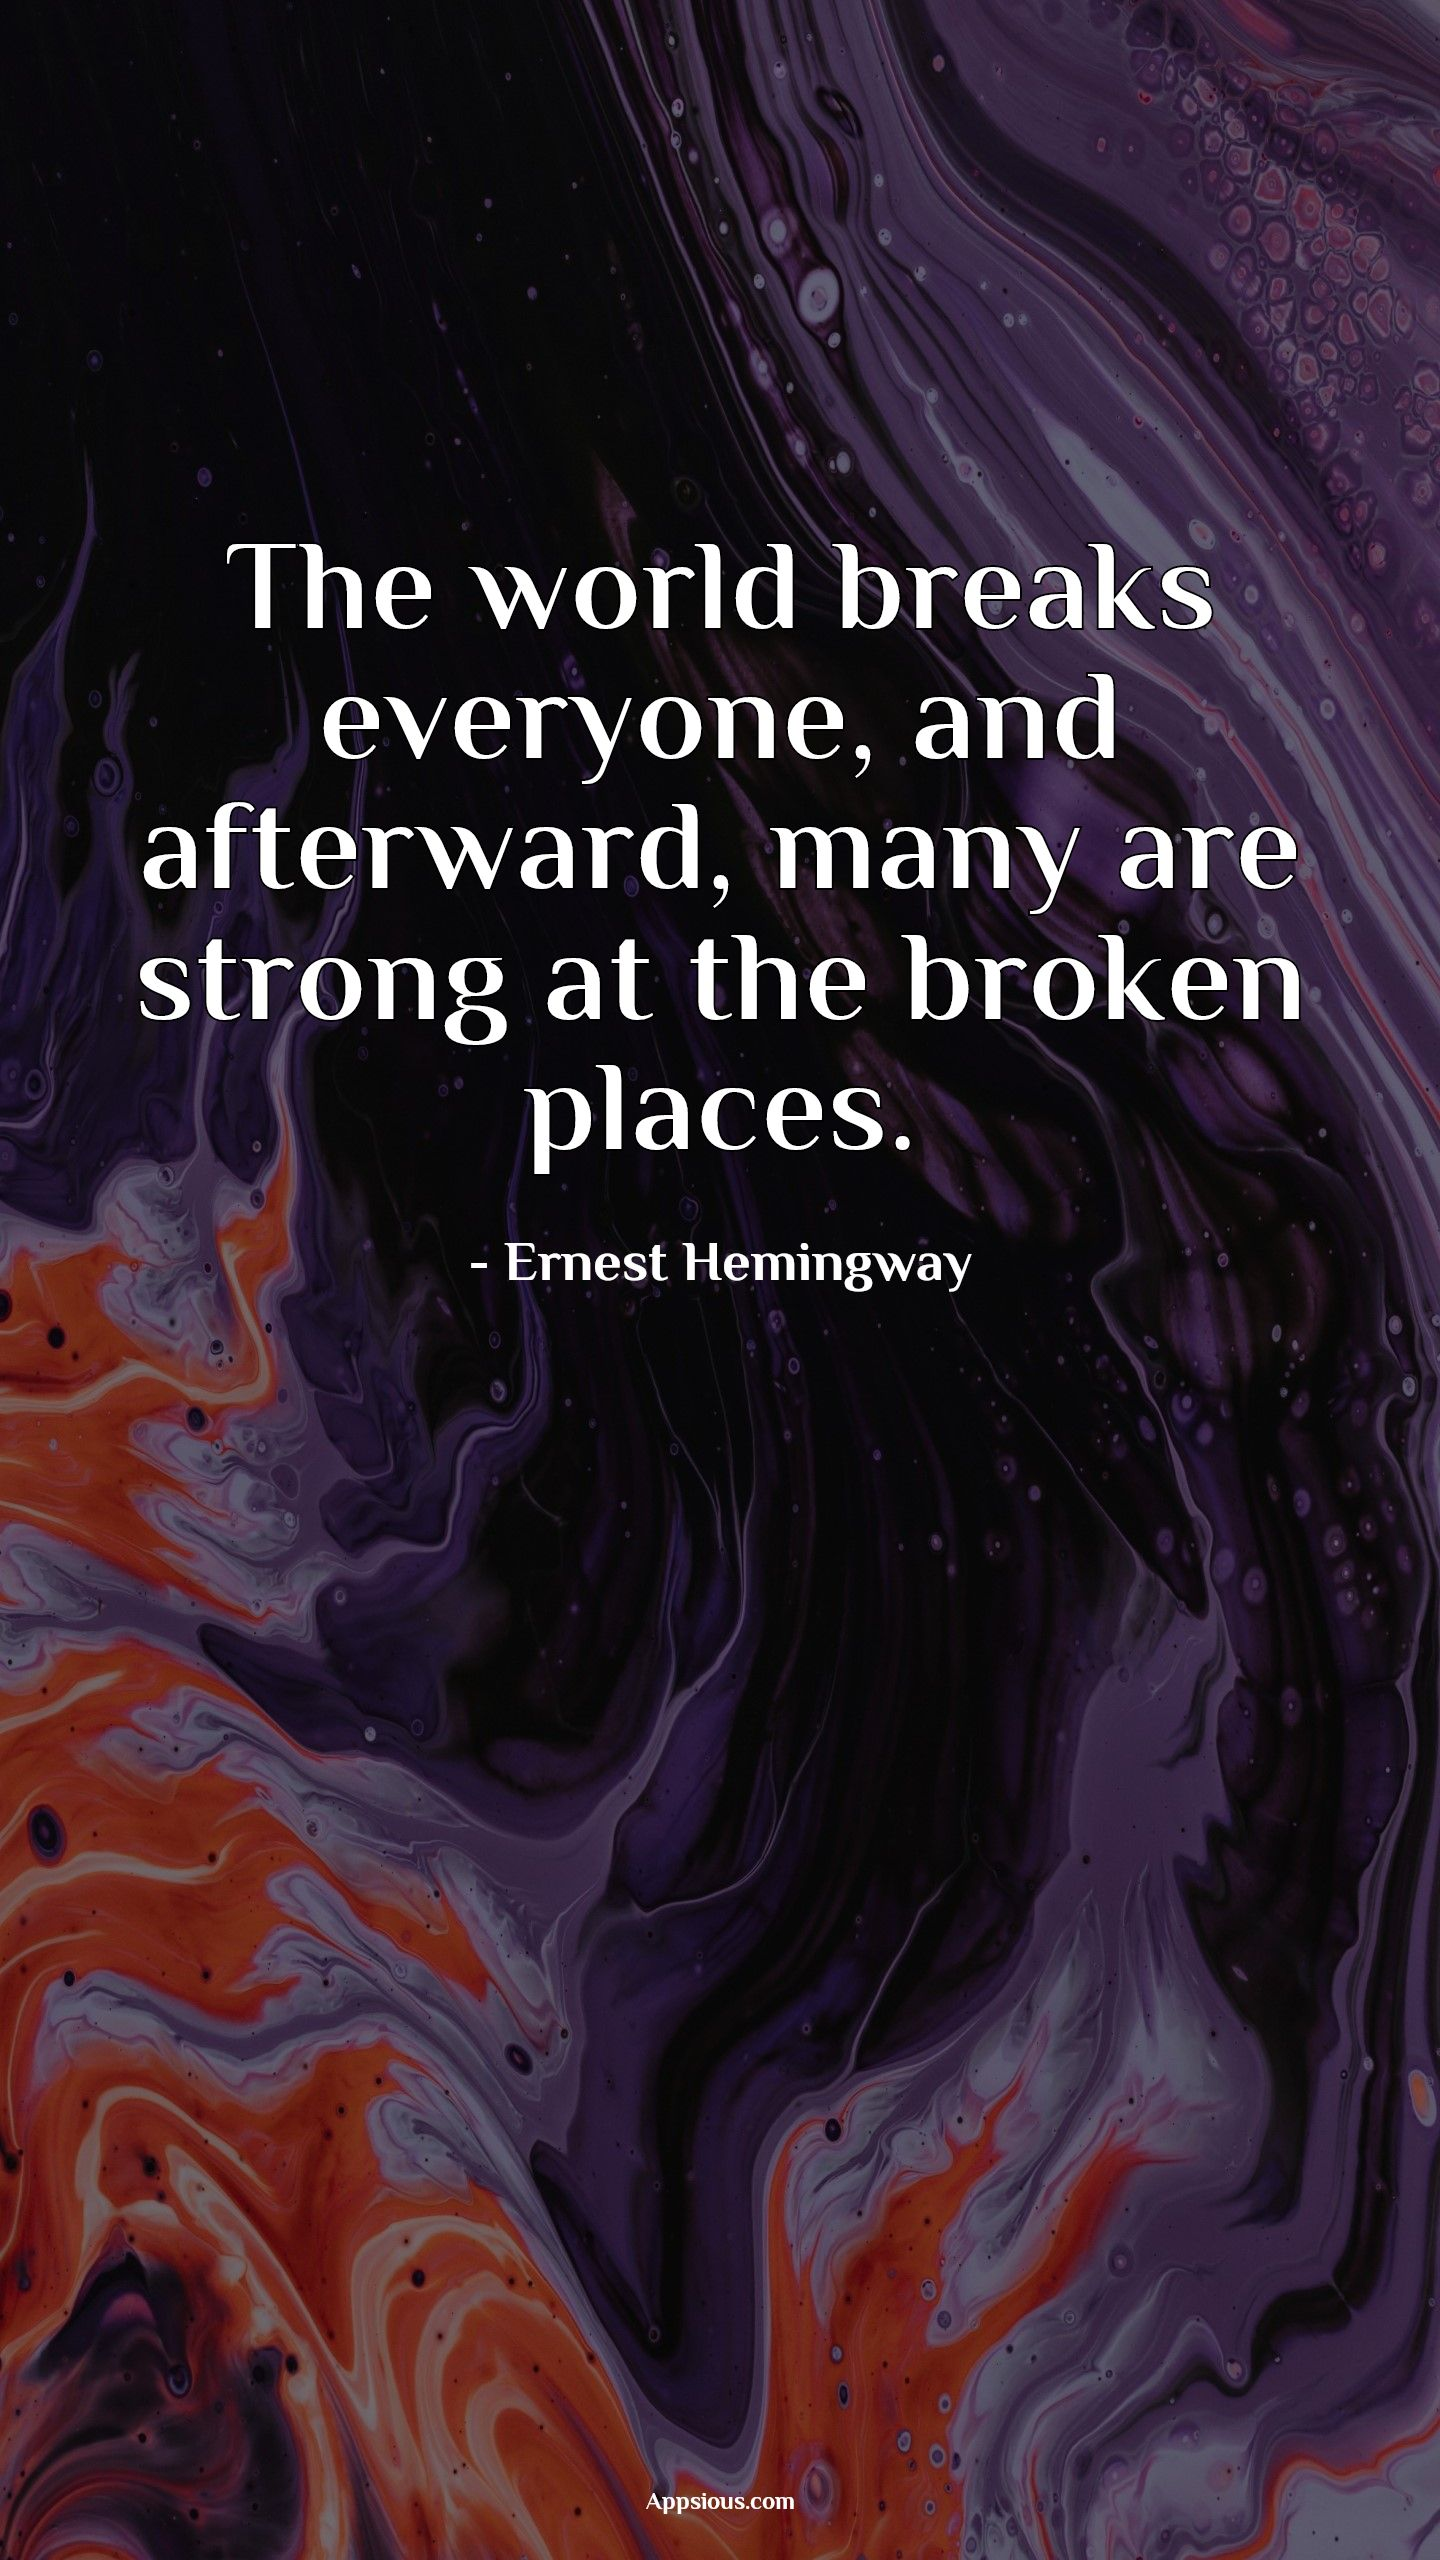 The world breaks everyone, and afterward, many are strong at the broken places.